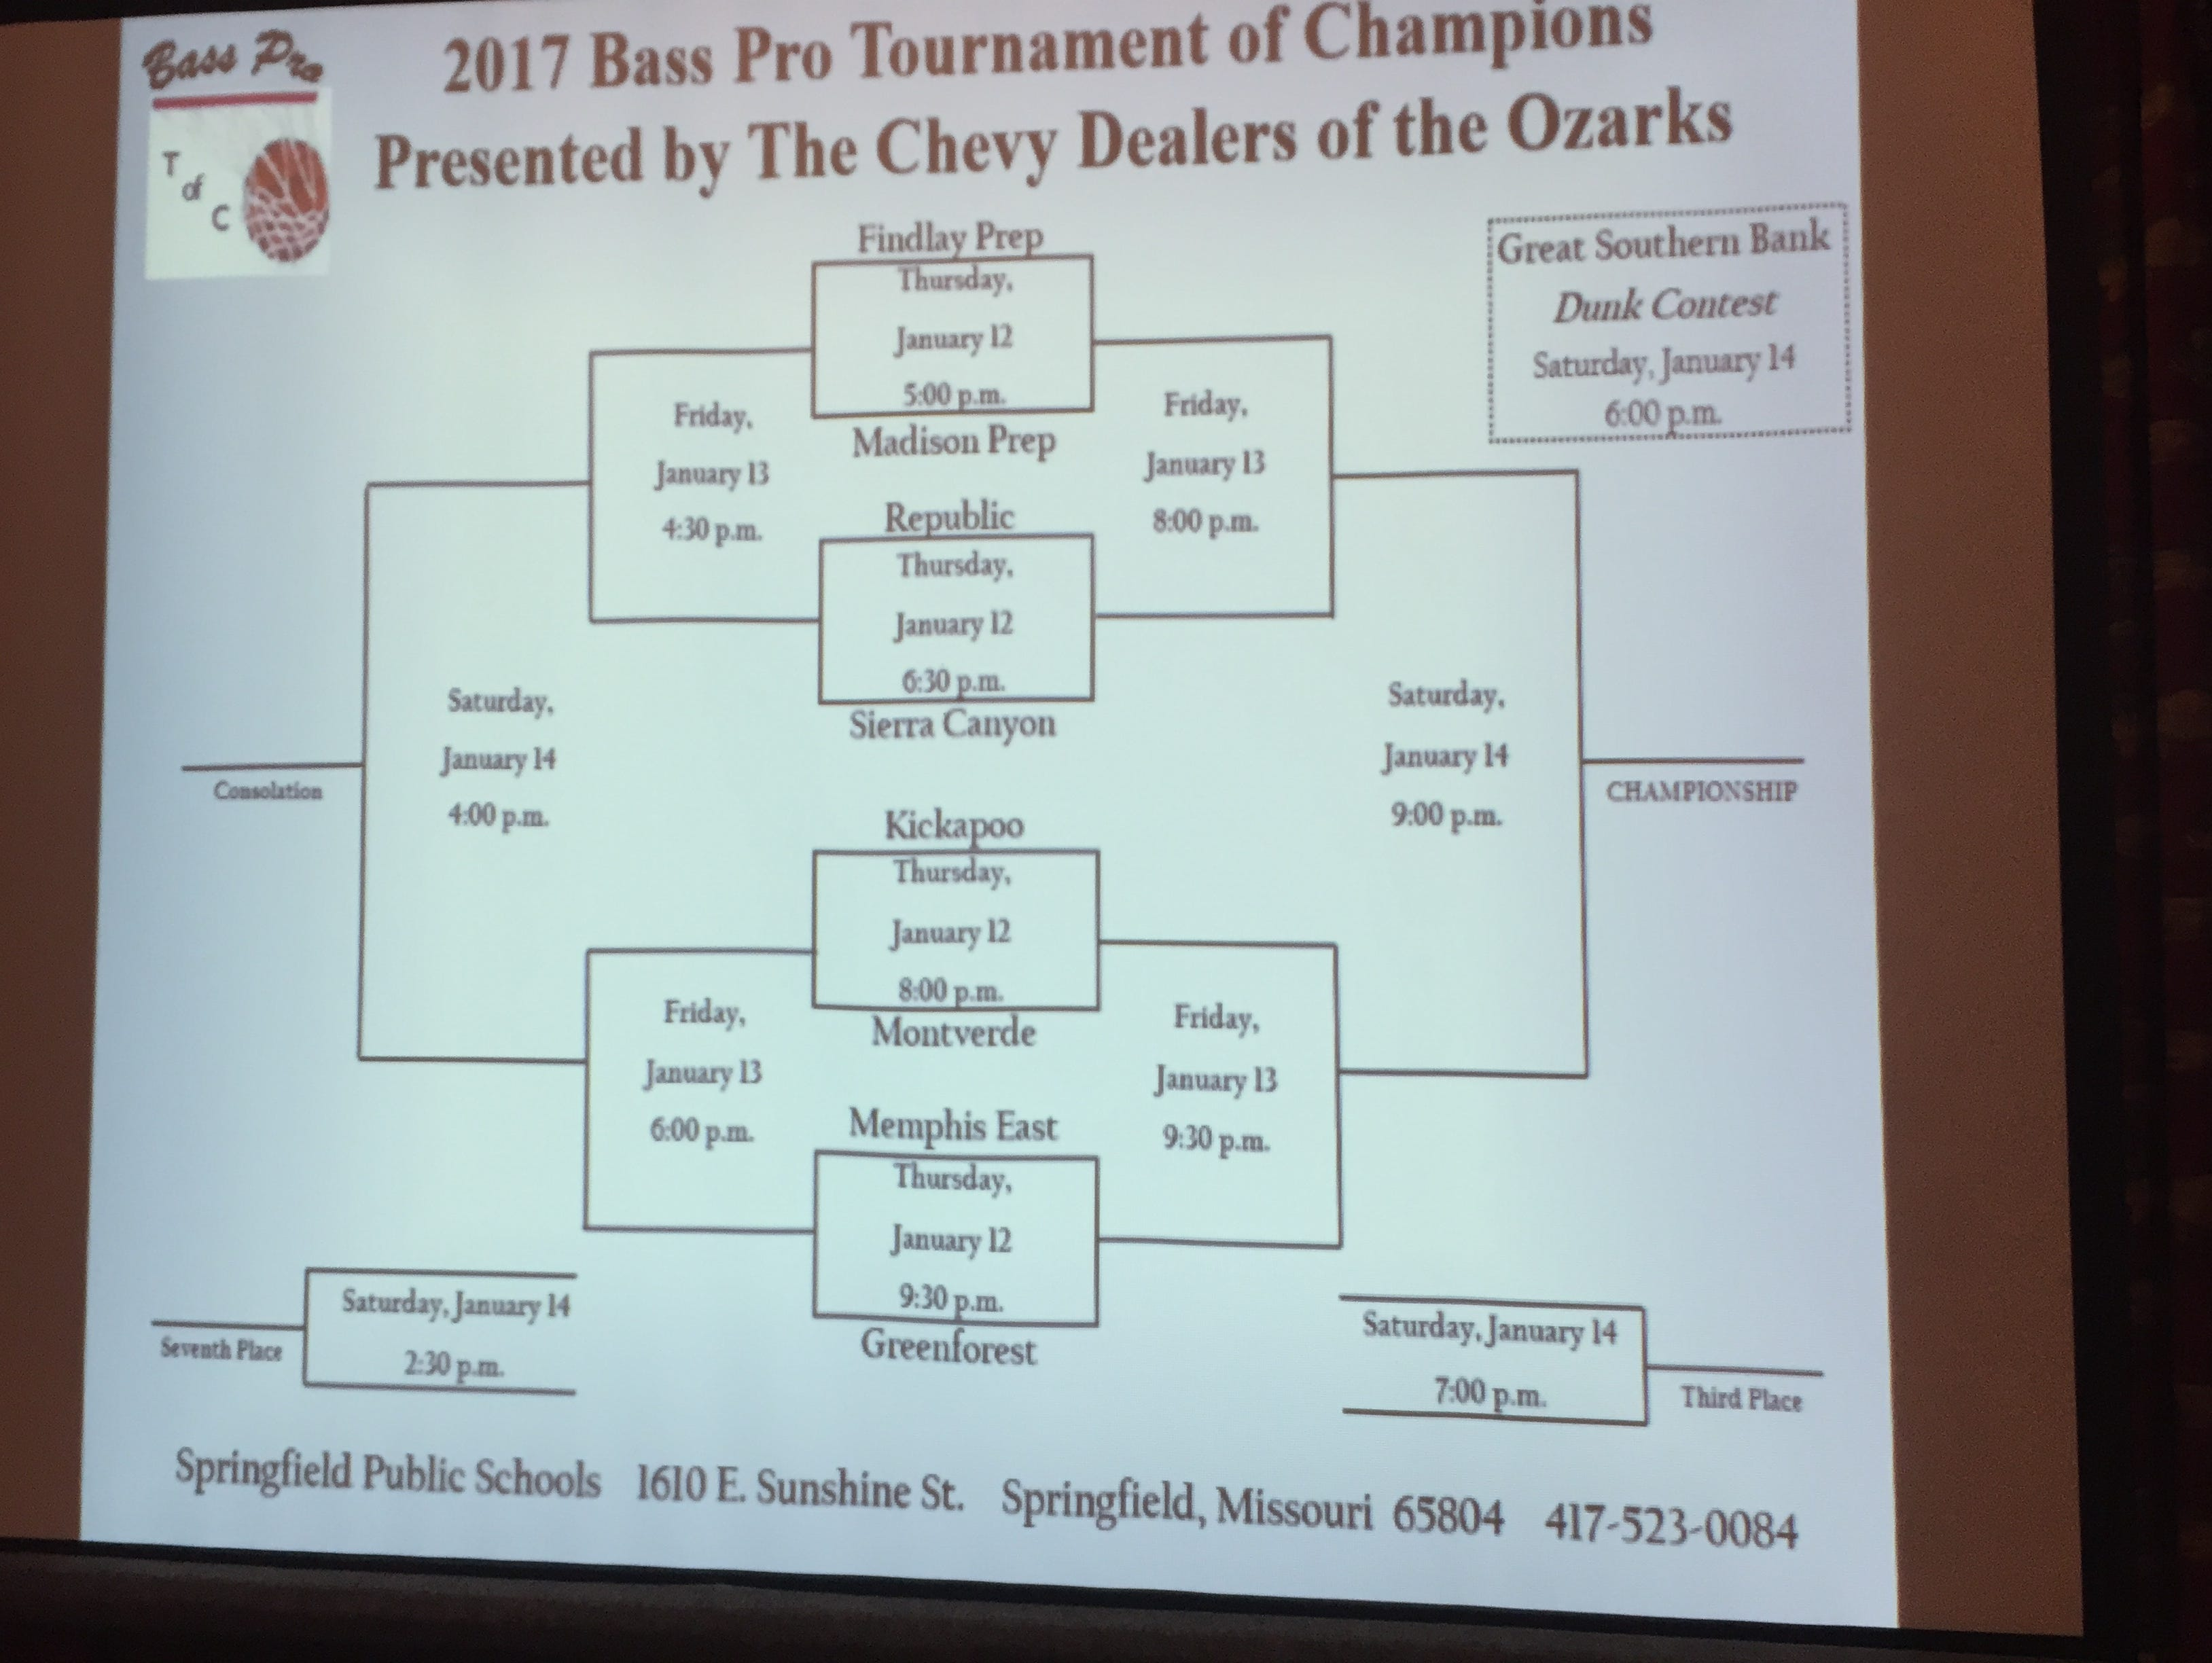 The bracket for the 2017 Bass Pro Tournament of Champions was unveiled Jan. 3, 2017 at a press conference at the John A. and Genny Morris Conservation Center in Springfield.